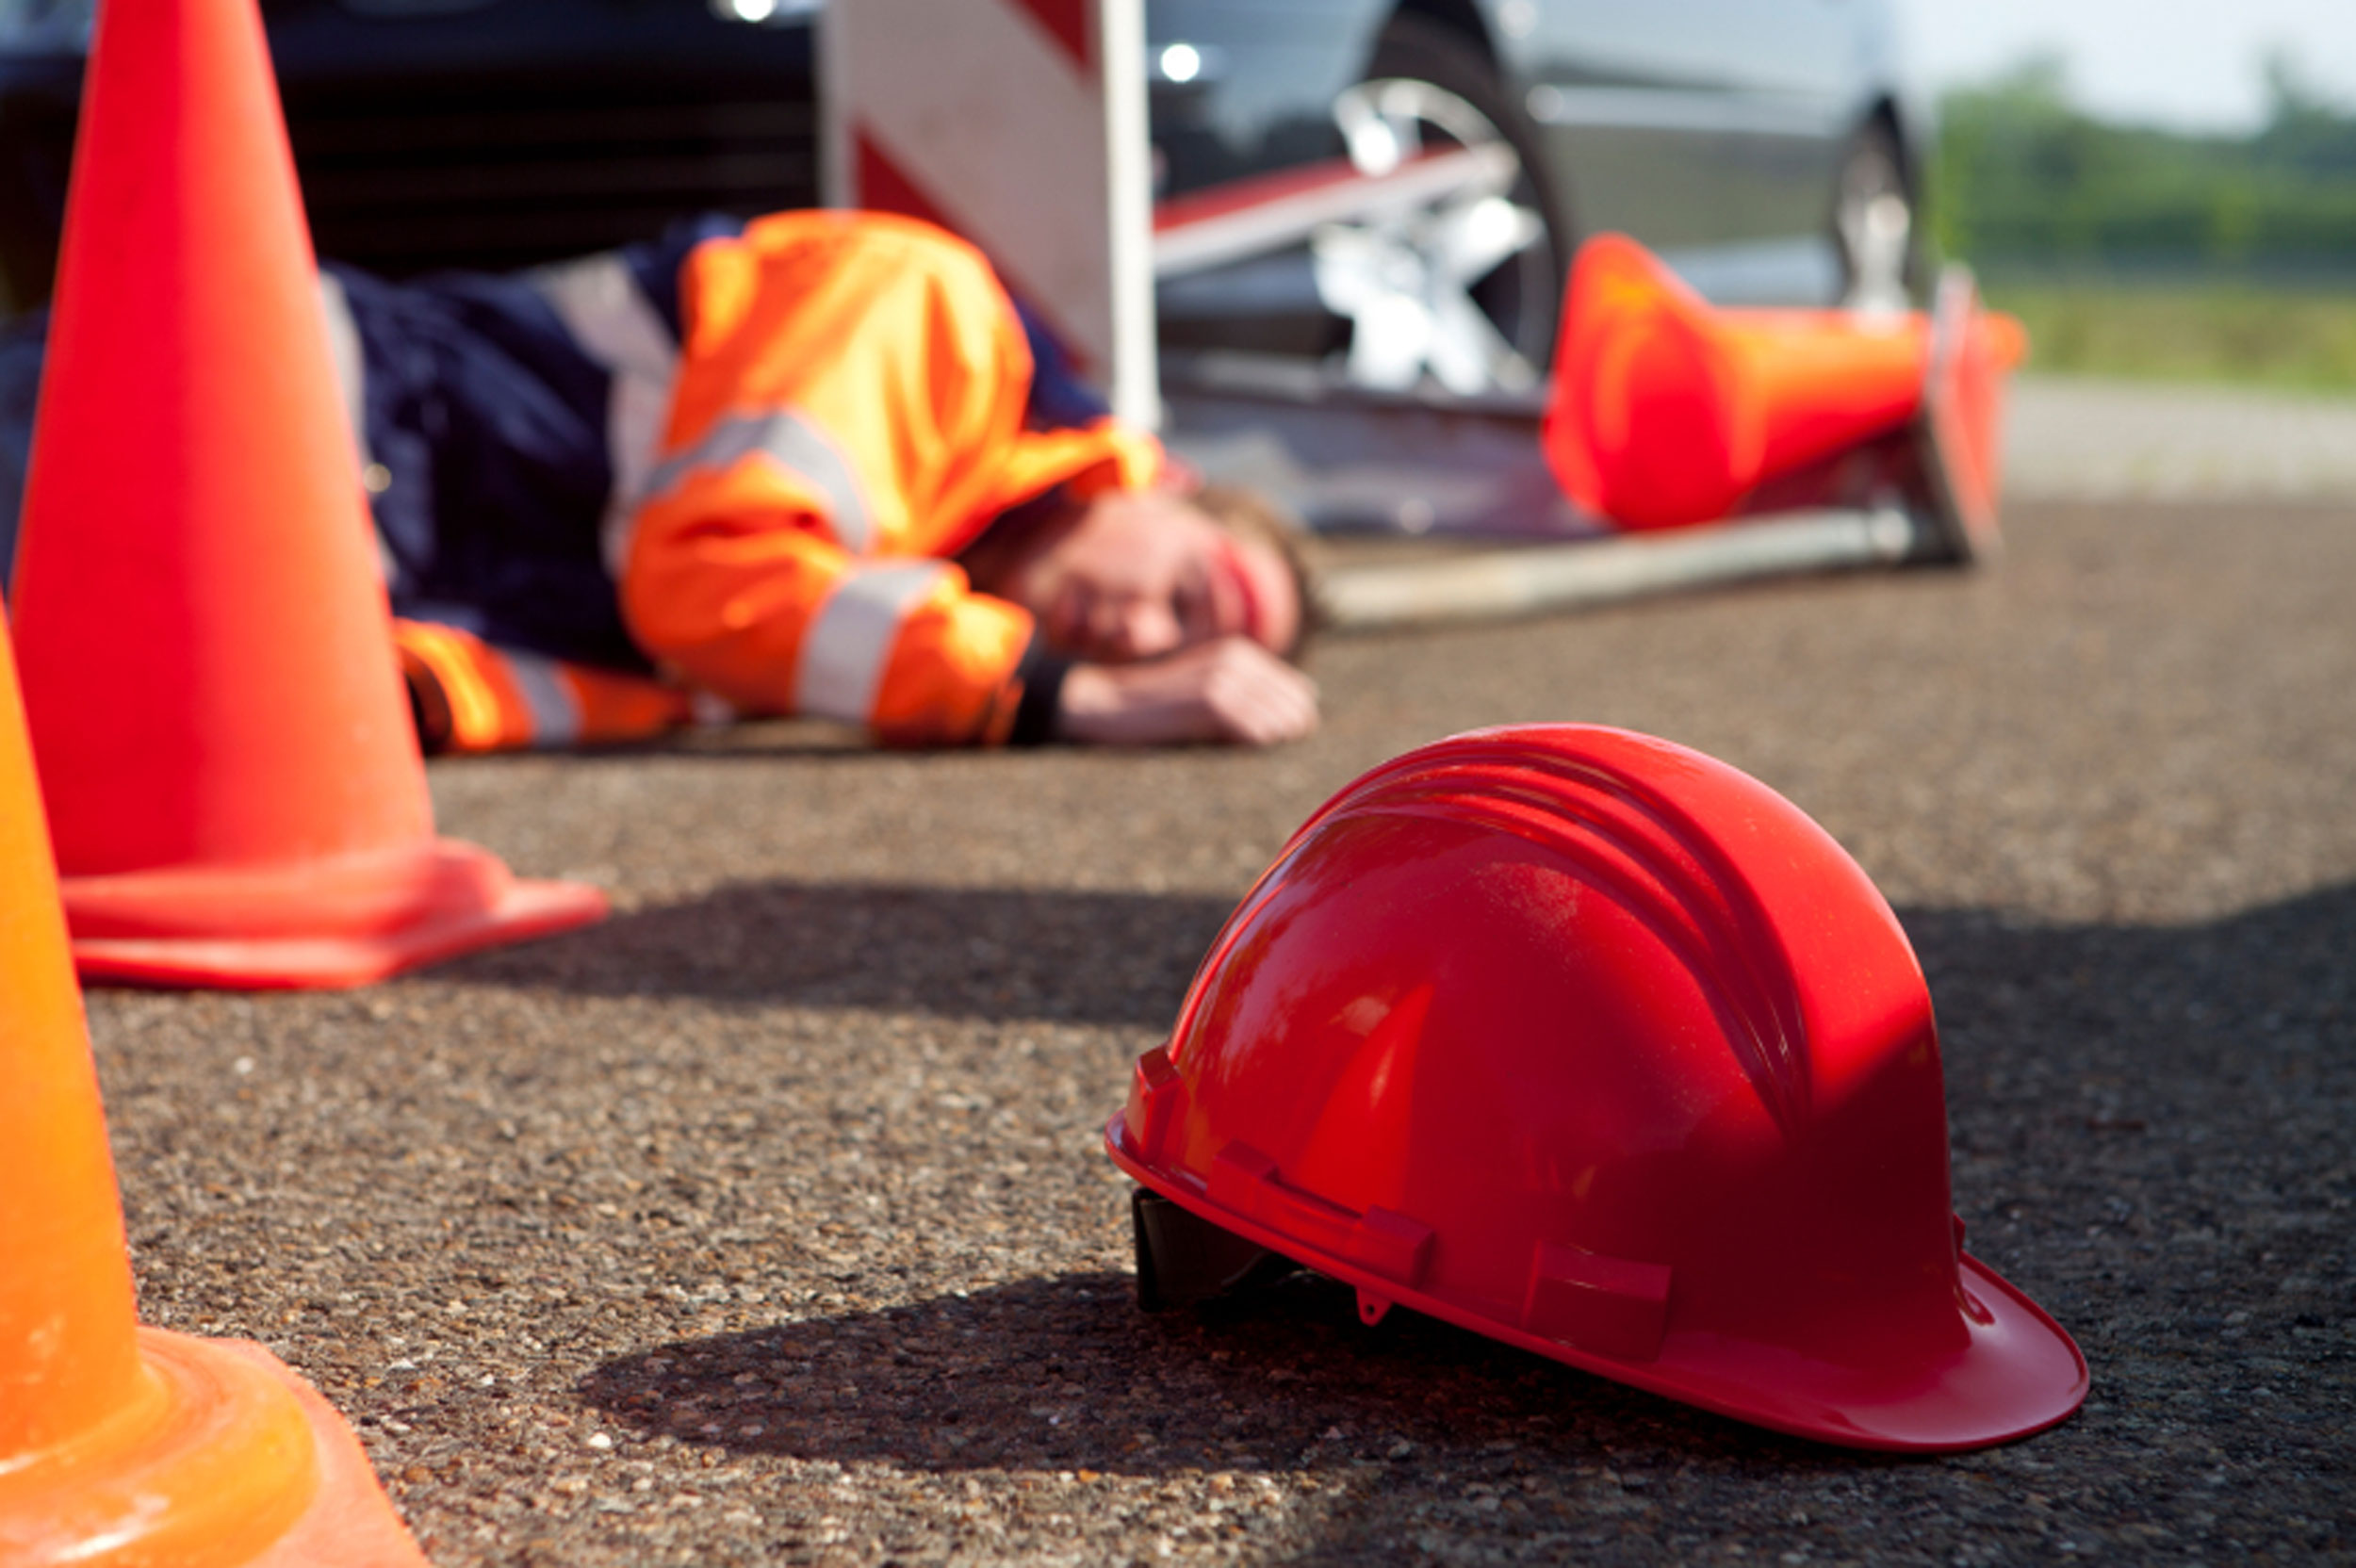 Does worker's compensation cover pre-existing injuries that are worsened by Employement?